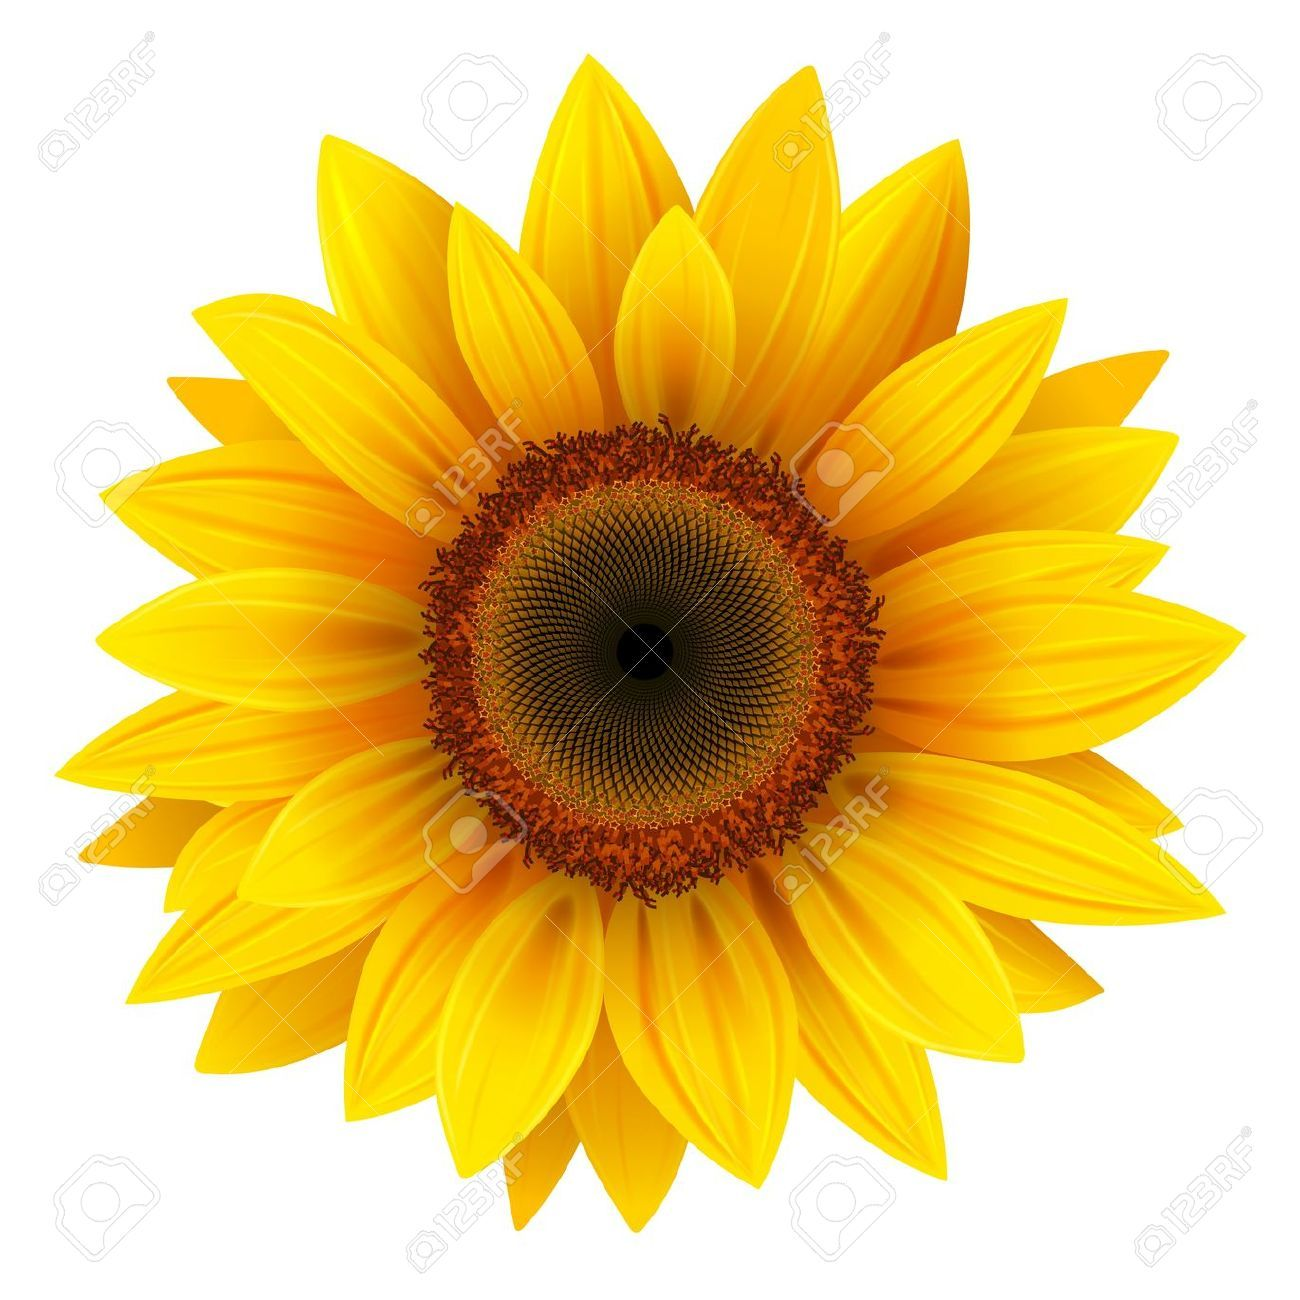 sunflower stock photos  pictures  royalty free sunflower sunflower clip art outline sunflower clipart images